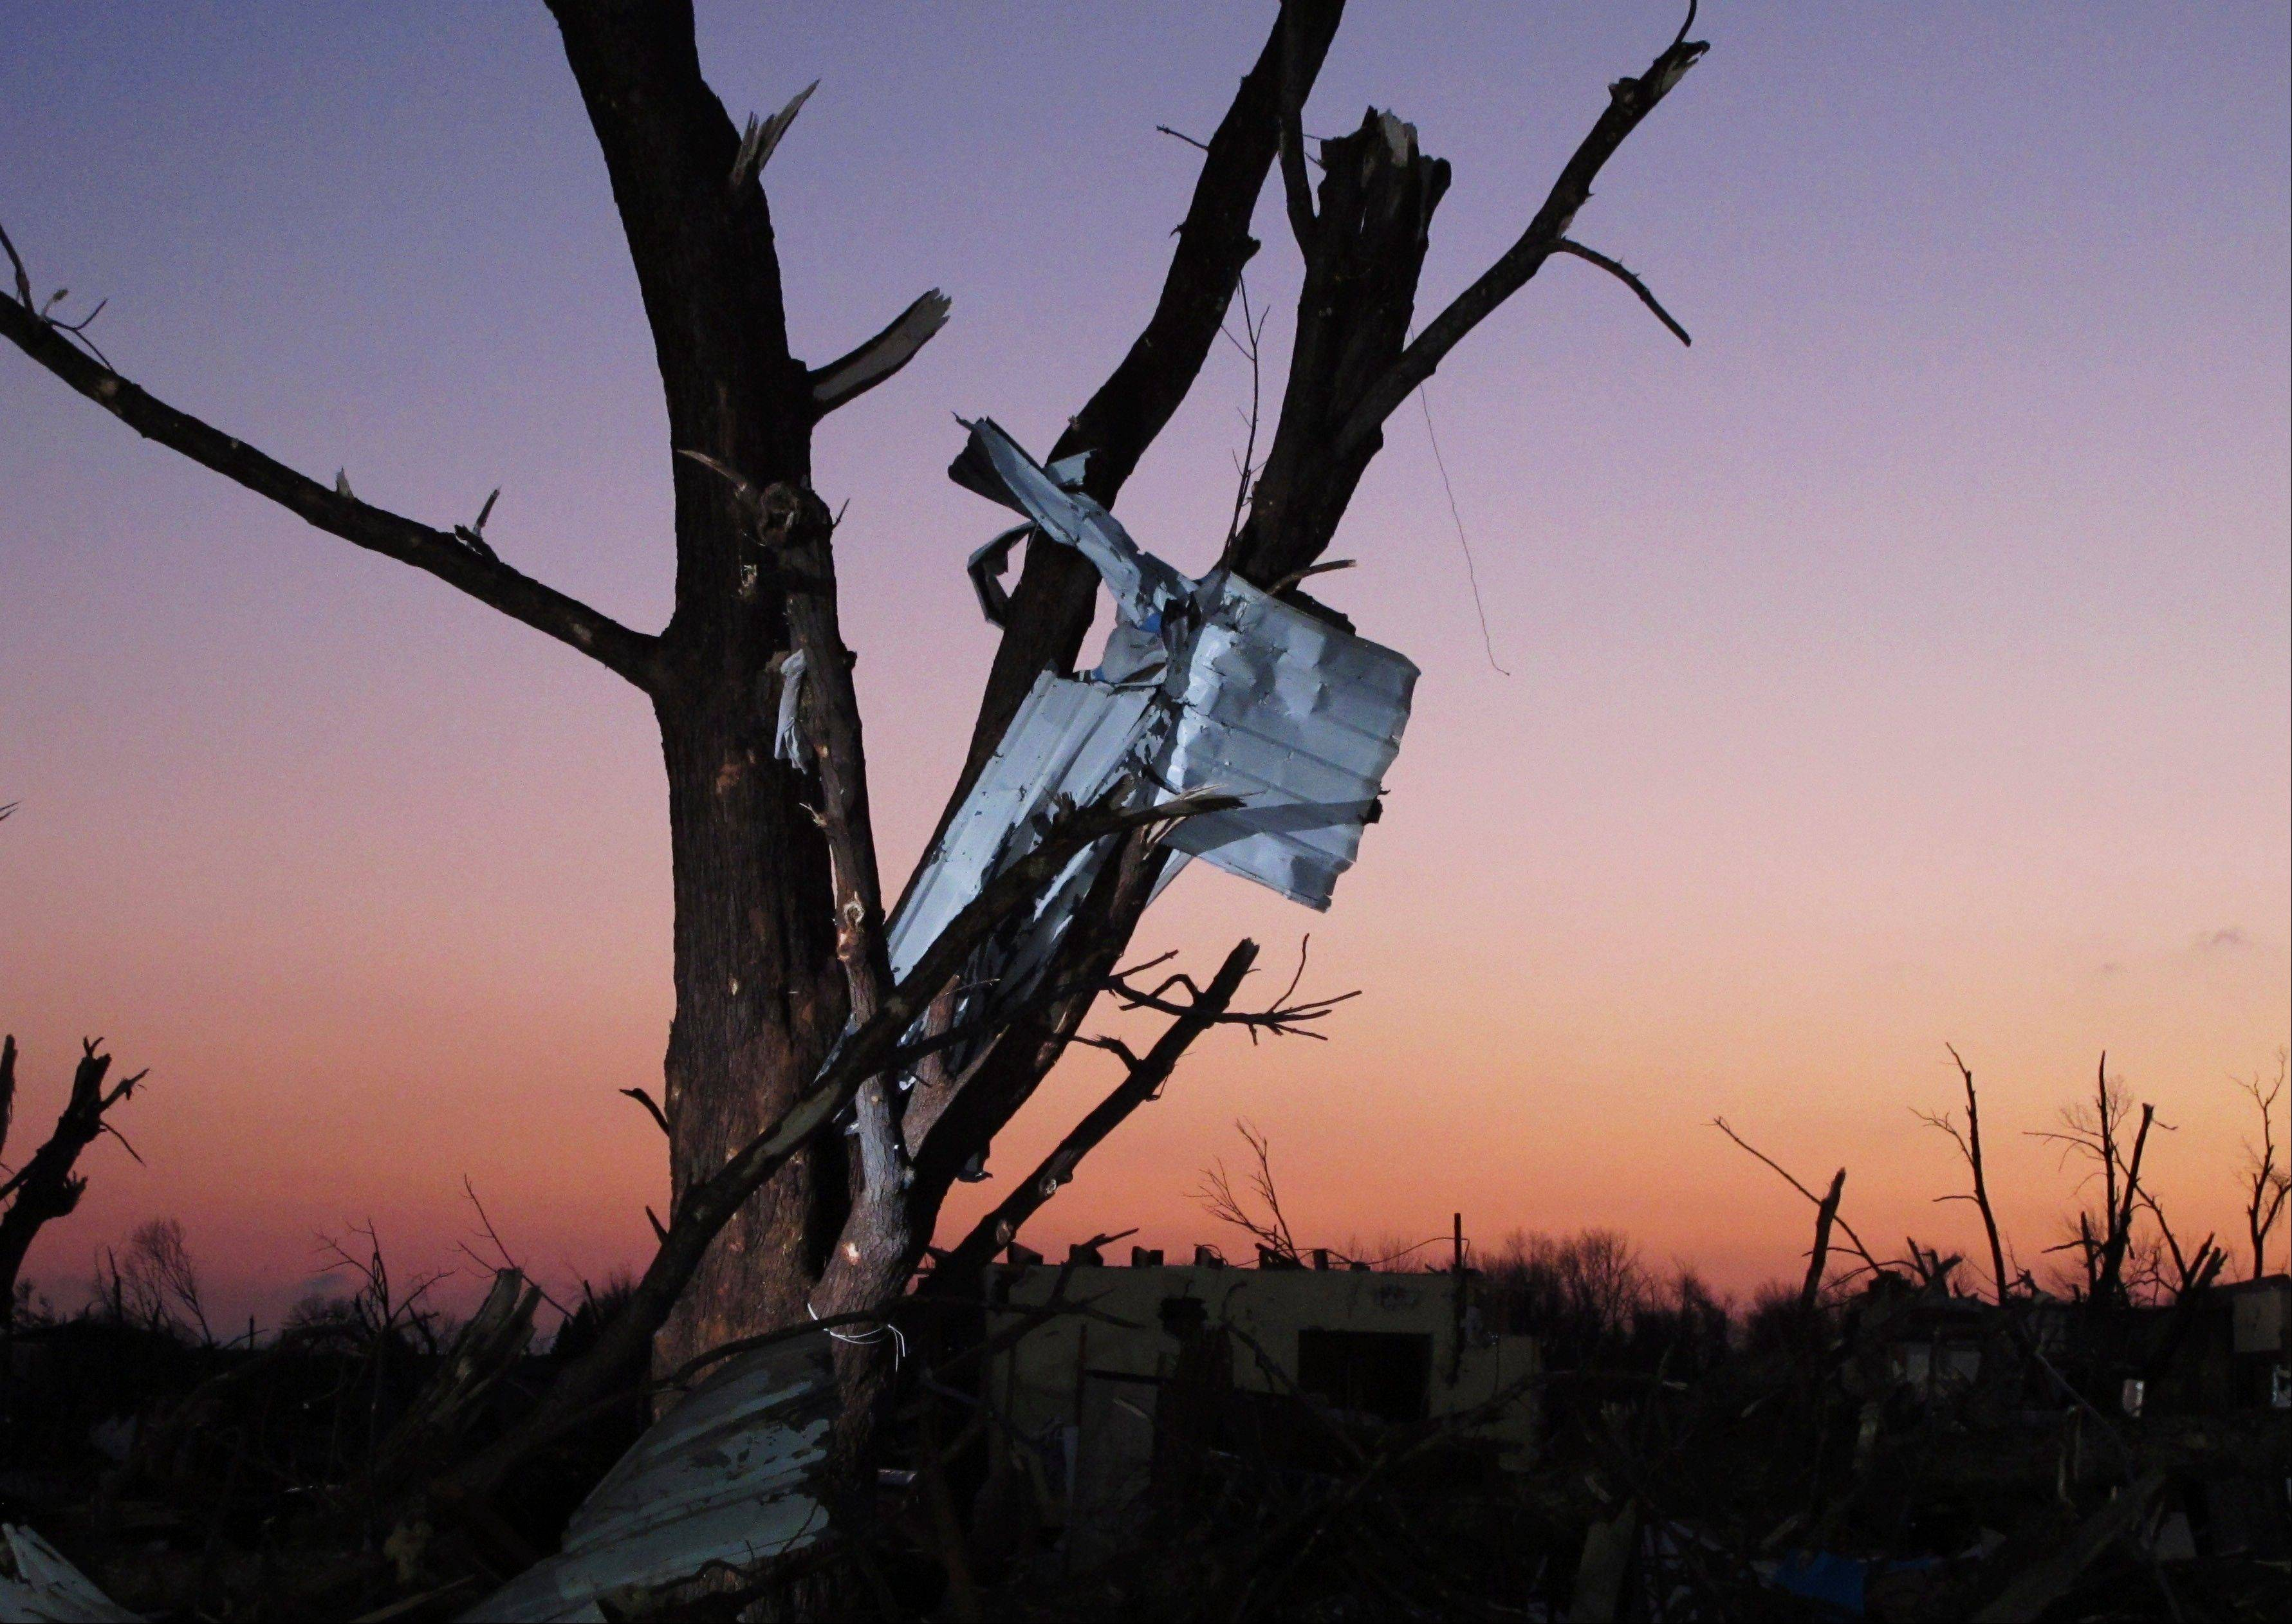 Debris is strewn in a tree Washington, Ill., early Monday morning, Nov. 18, 2013, after a tornado leveled hundreds of homes in the city the day before.